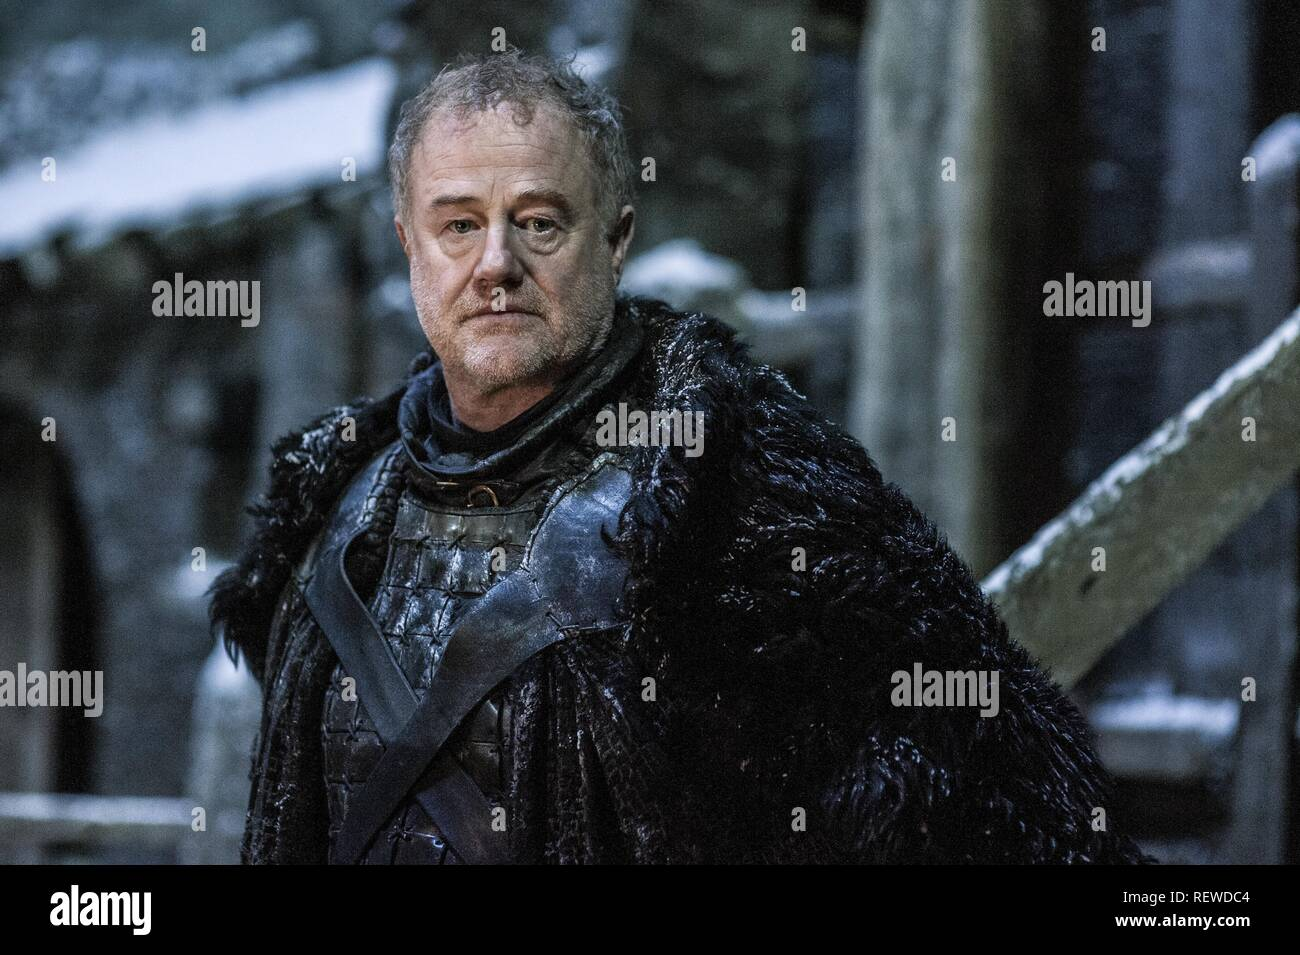 OWEN TEALE GAME OF THRONES : SEASON 6 (2016) - Stock Image